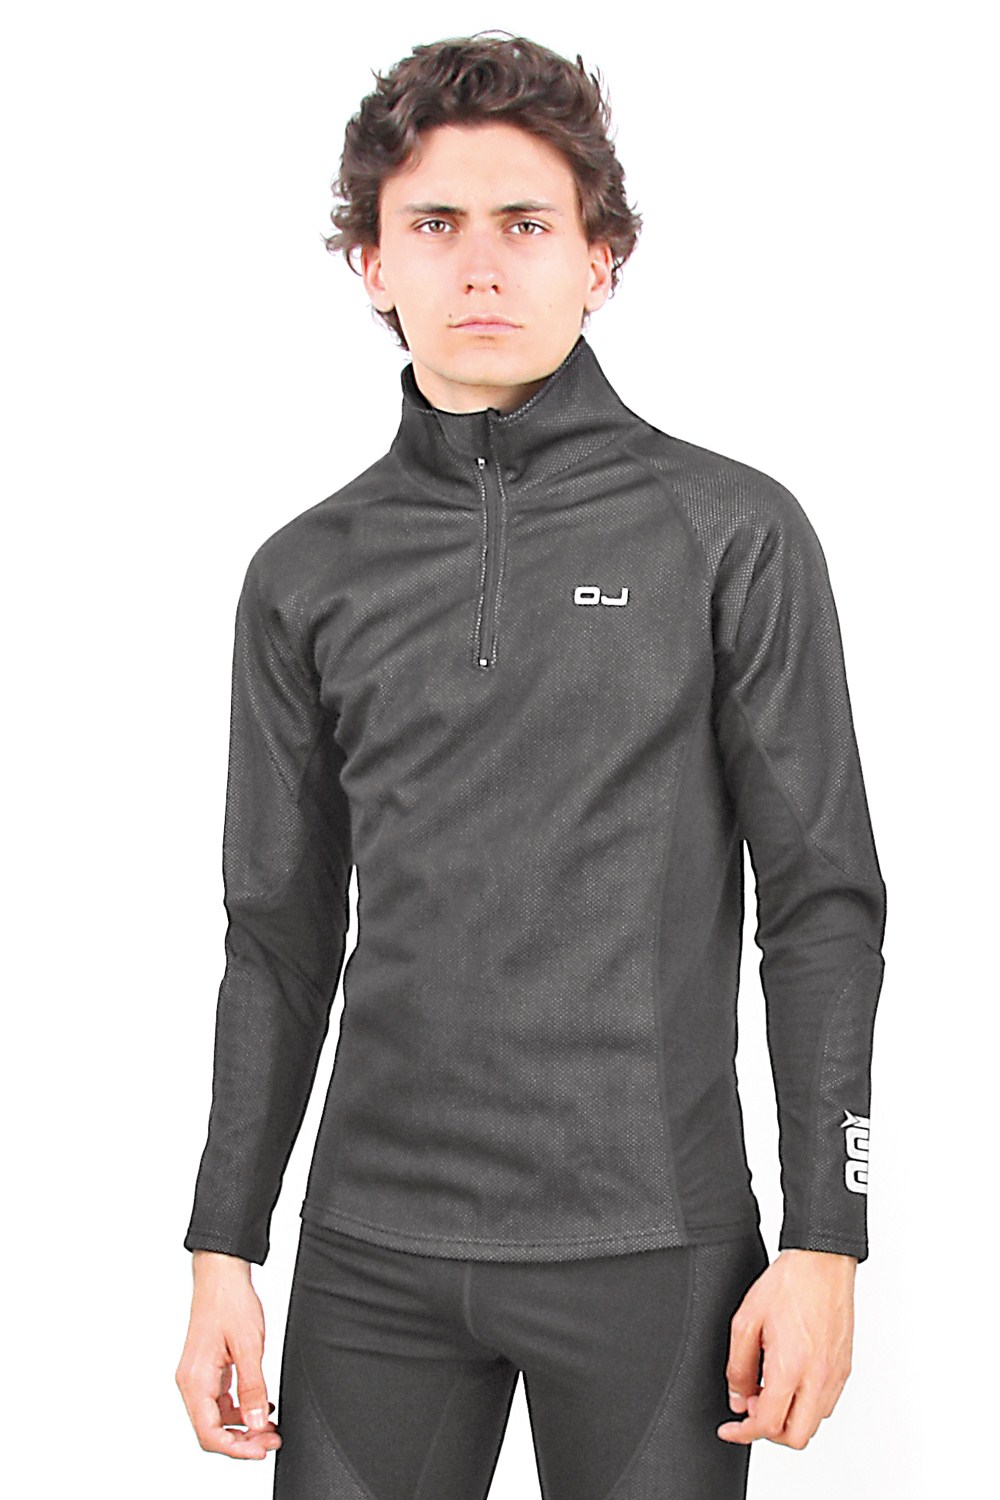 OJ Windshirt thermal shirt black